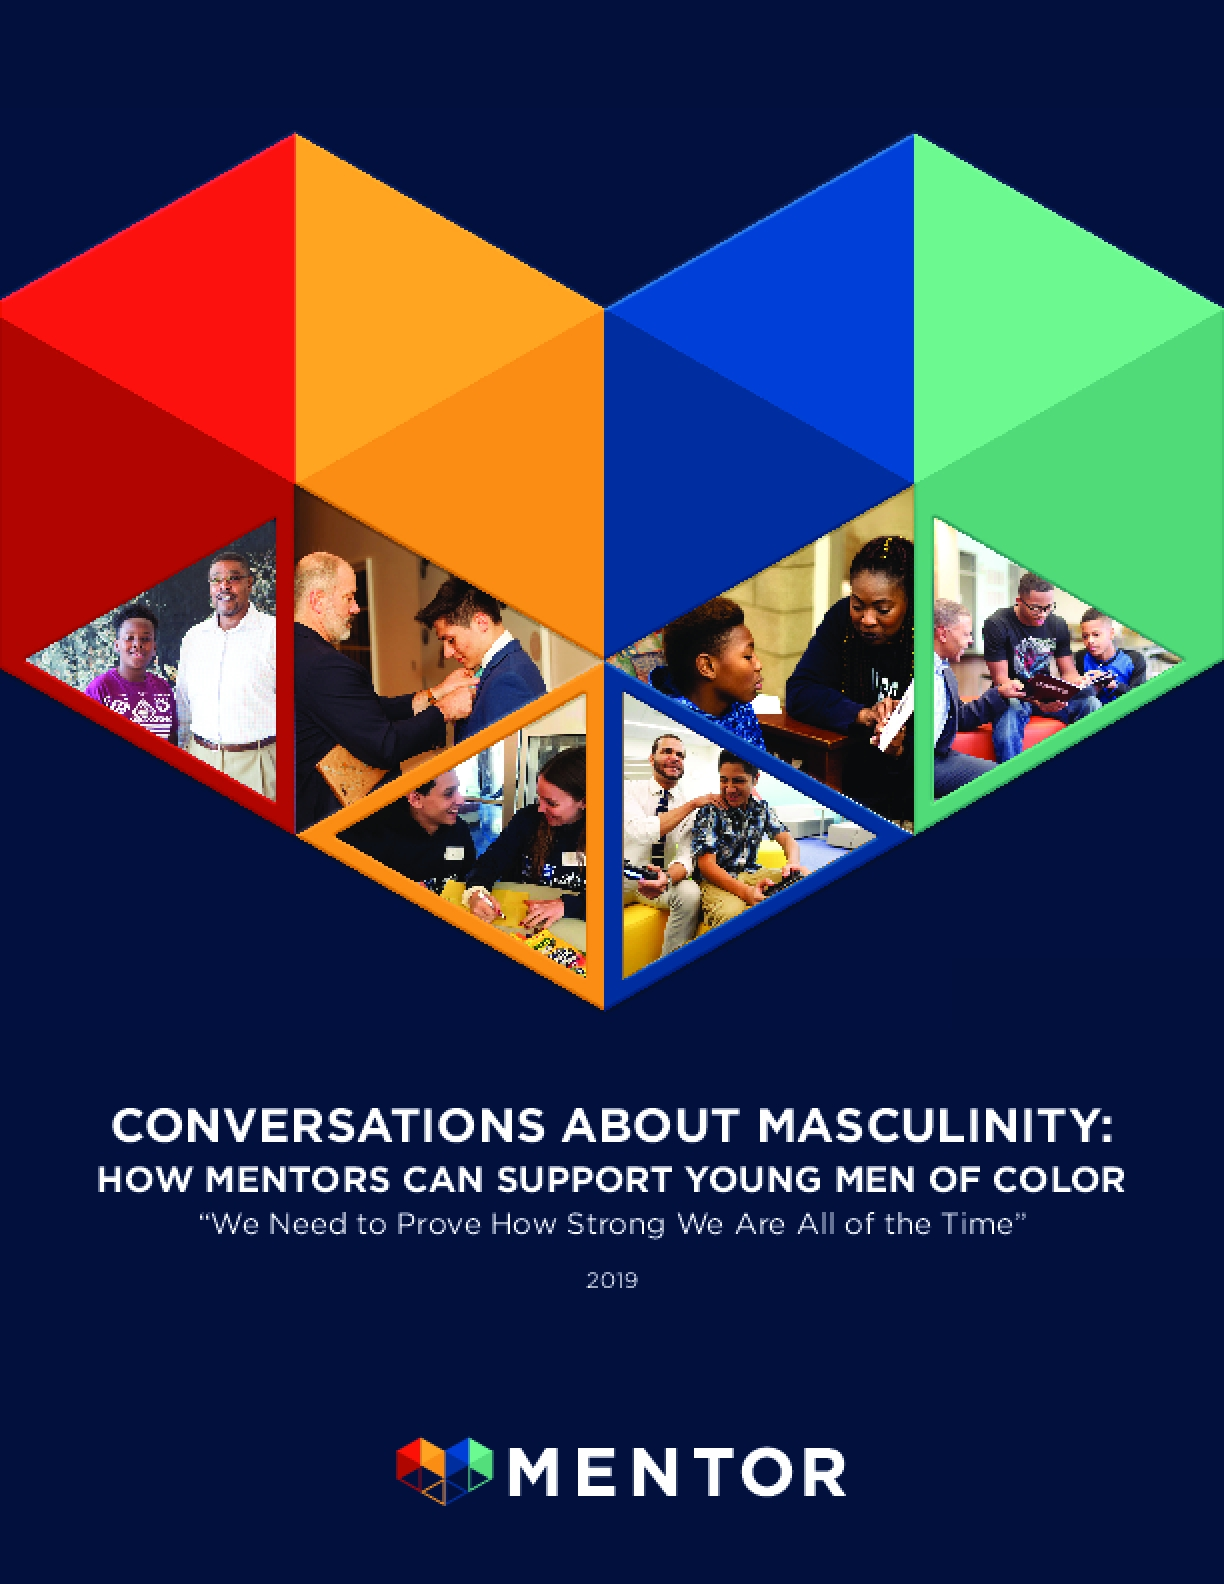 """Conversations About Masculinity: How Mentors Can Support Young Men of Color - """"We Need to Prove How Strong We Are All of the Time"""""""